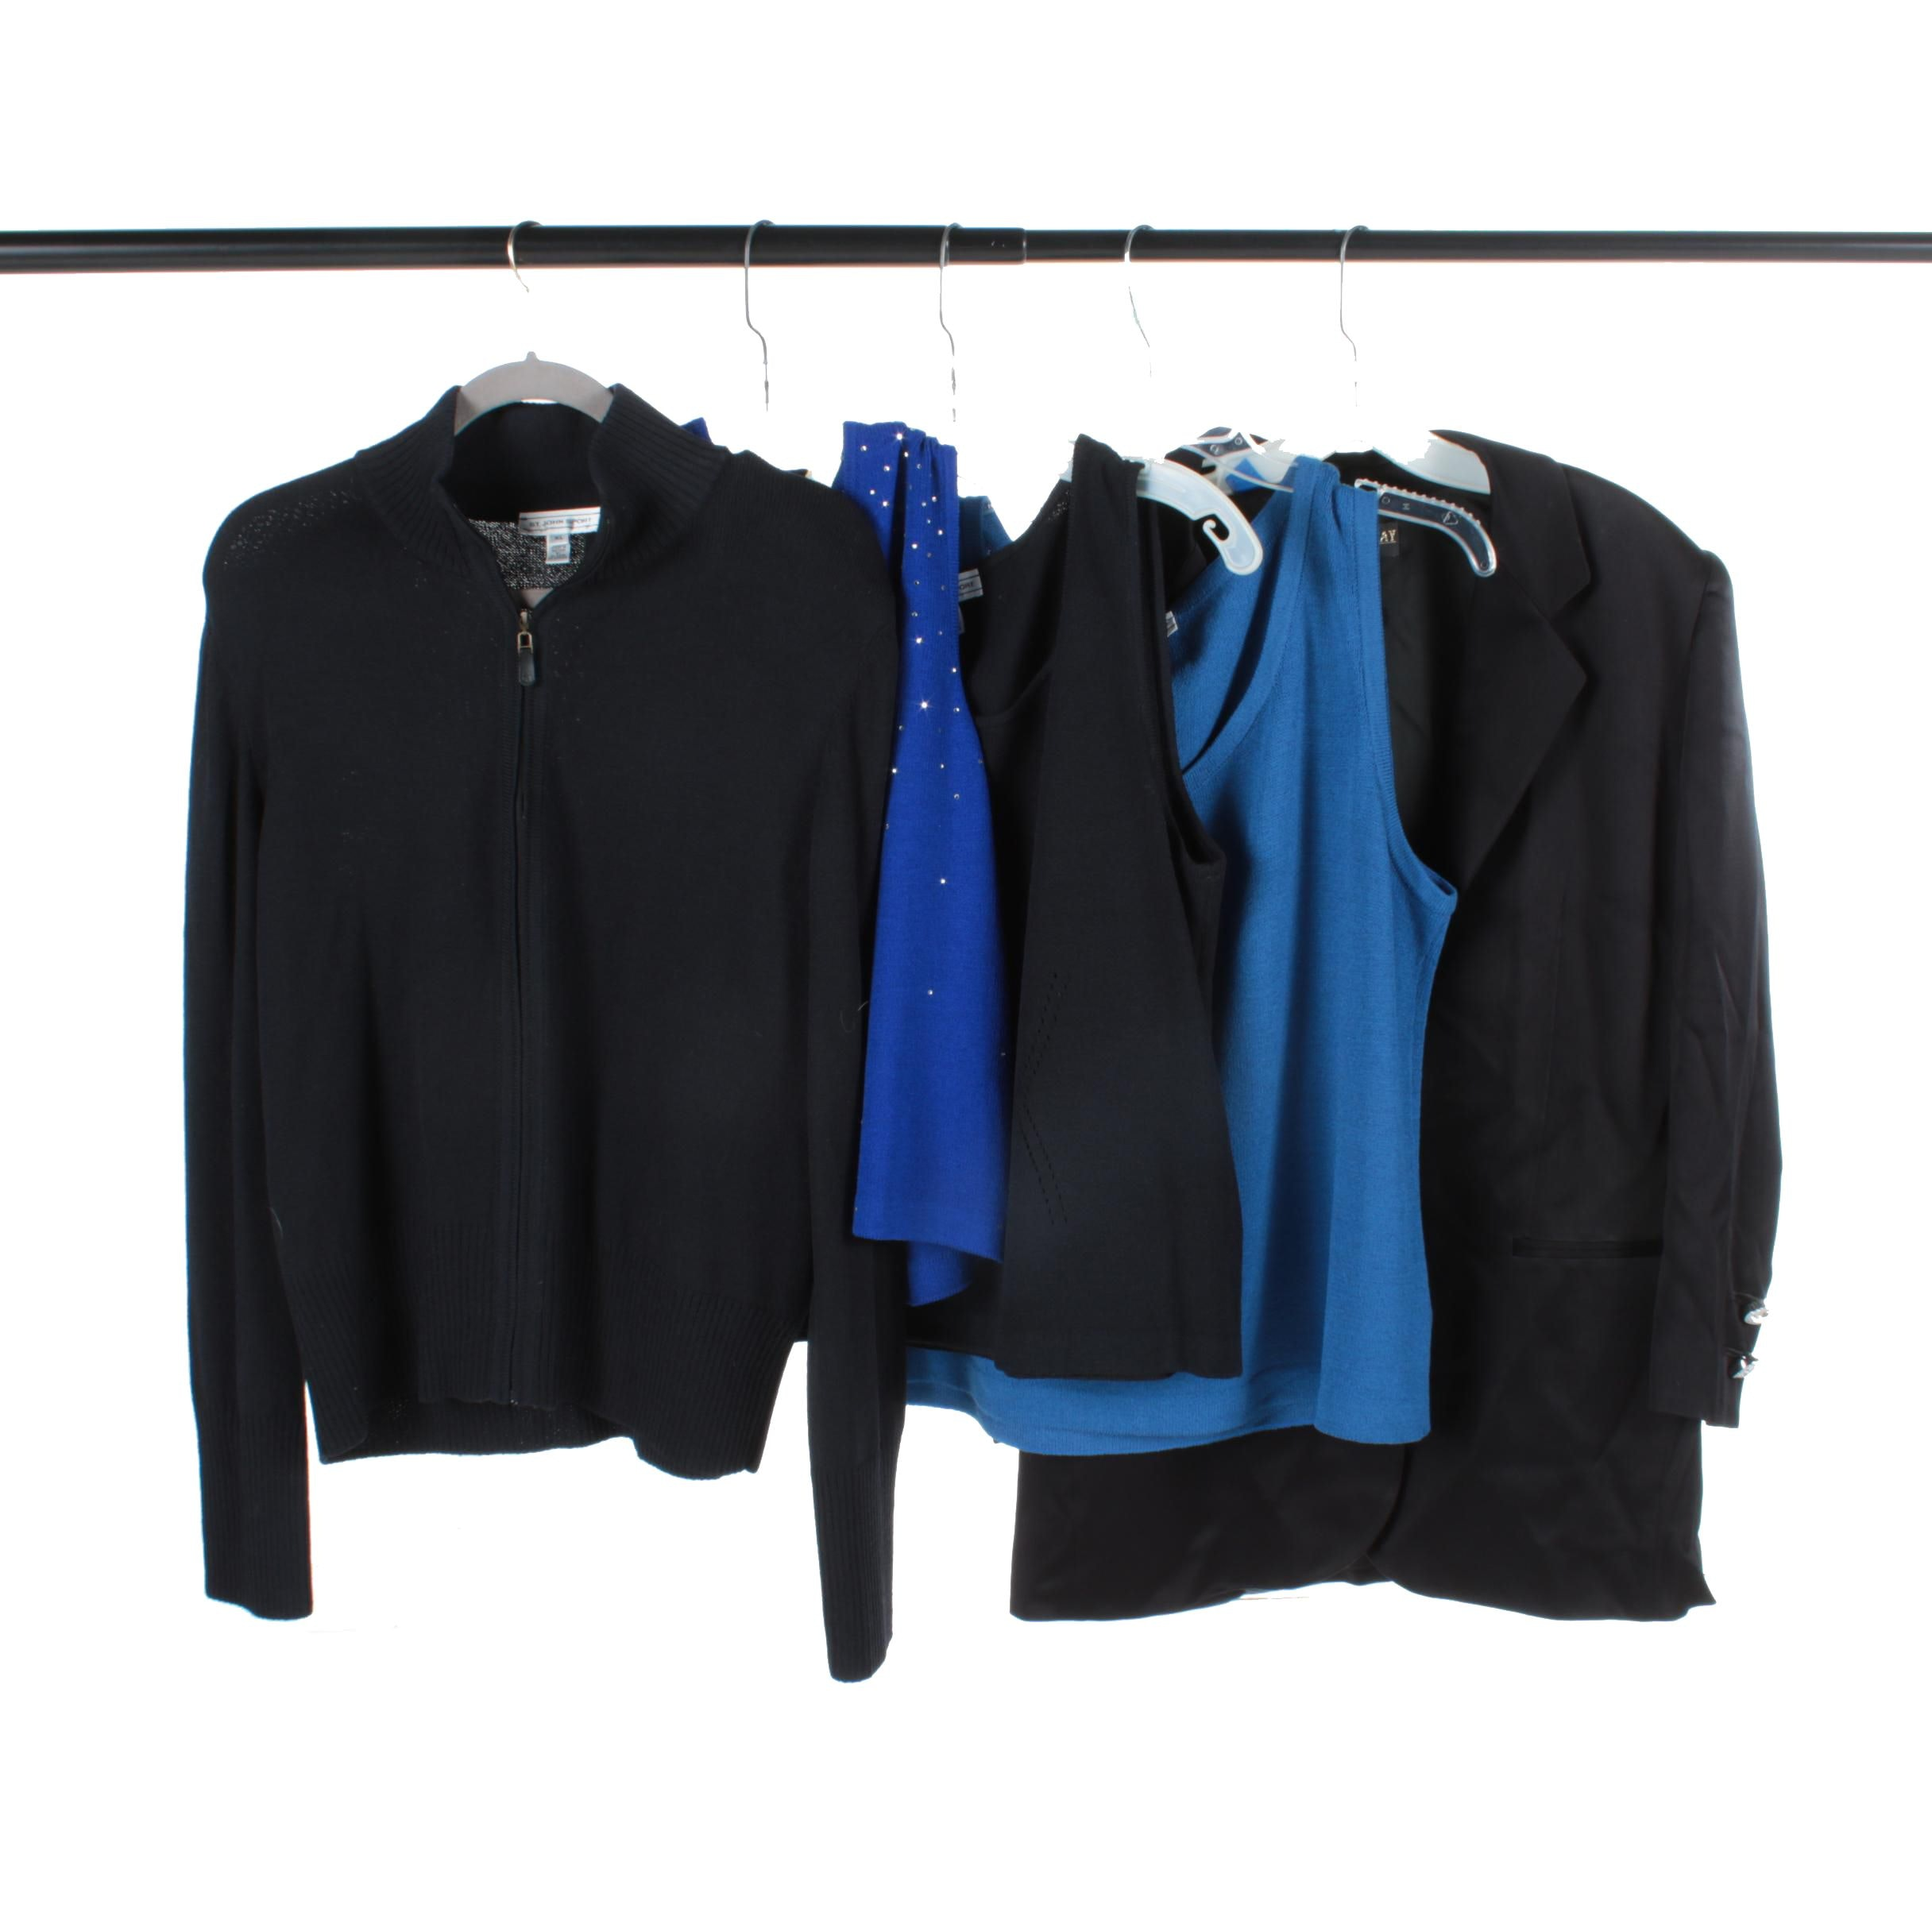 St. John Brand Tops and Jackets